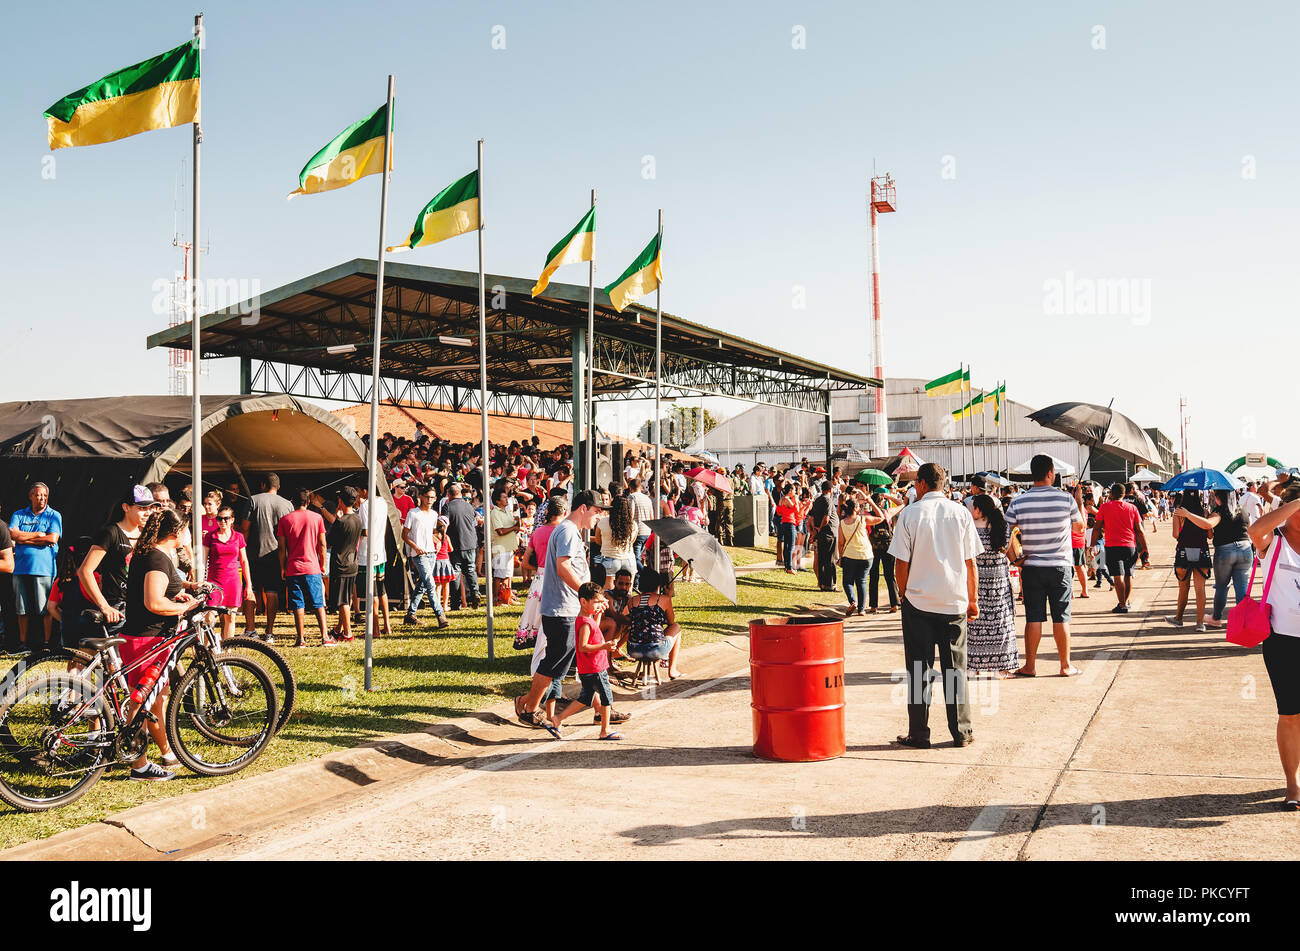 Campo Grande, Brazil - September 09, 2018: People at the military air base to visit the Portoes Abertos Ala 5. Event open to the public. Exhibition of - Stock Image